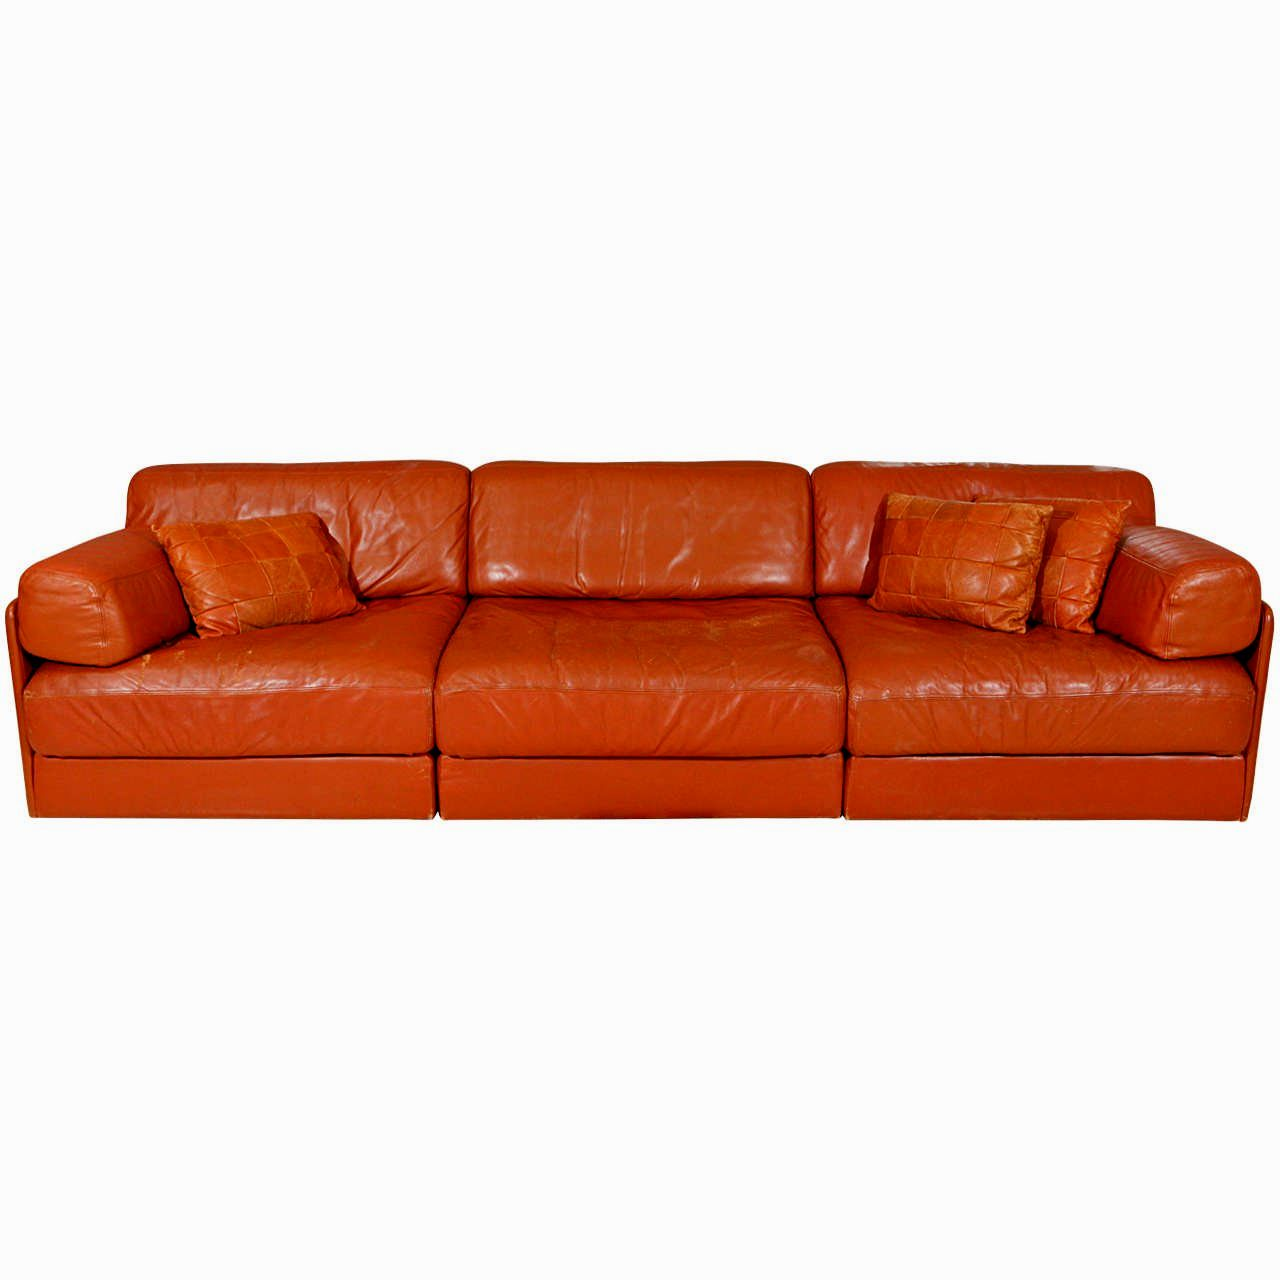 excellent sleeper sectional sofa picture-Modern Sleeper Sectional sofa Plan